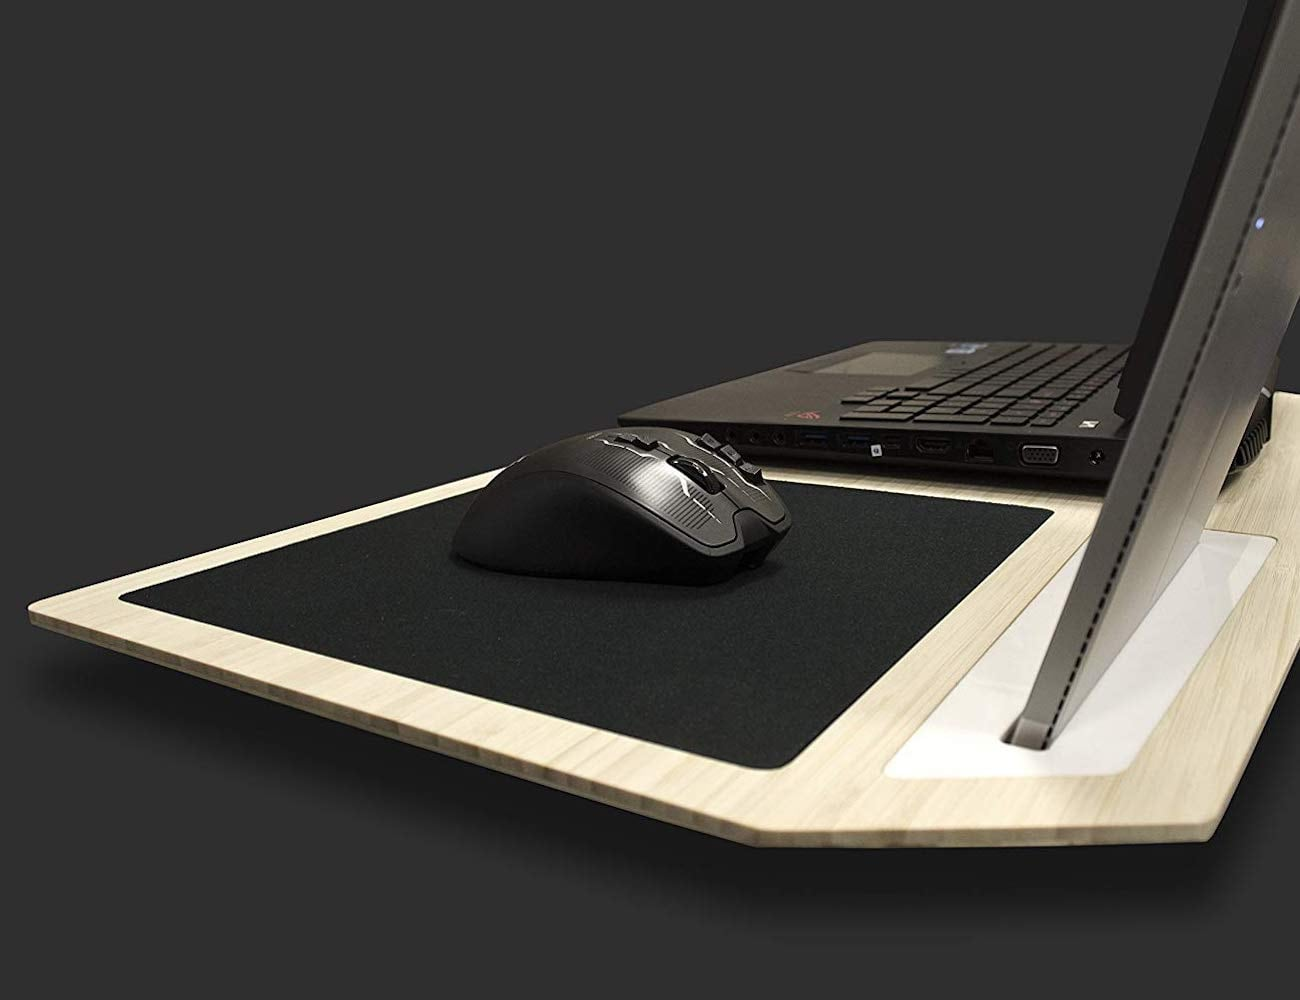 iSkelter Hover X+ Ultimate Gaming Lapdesk improves laptop efficiency